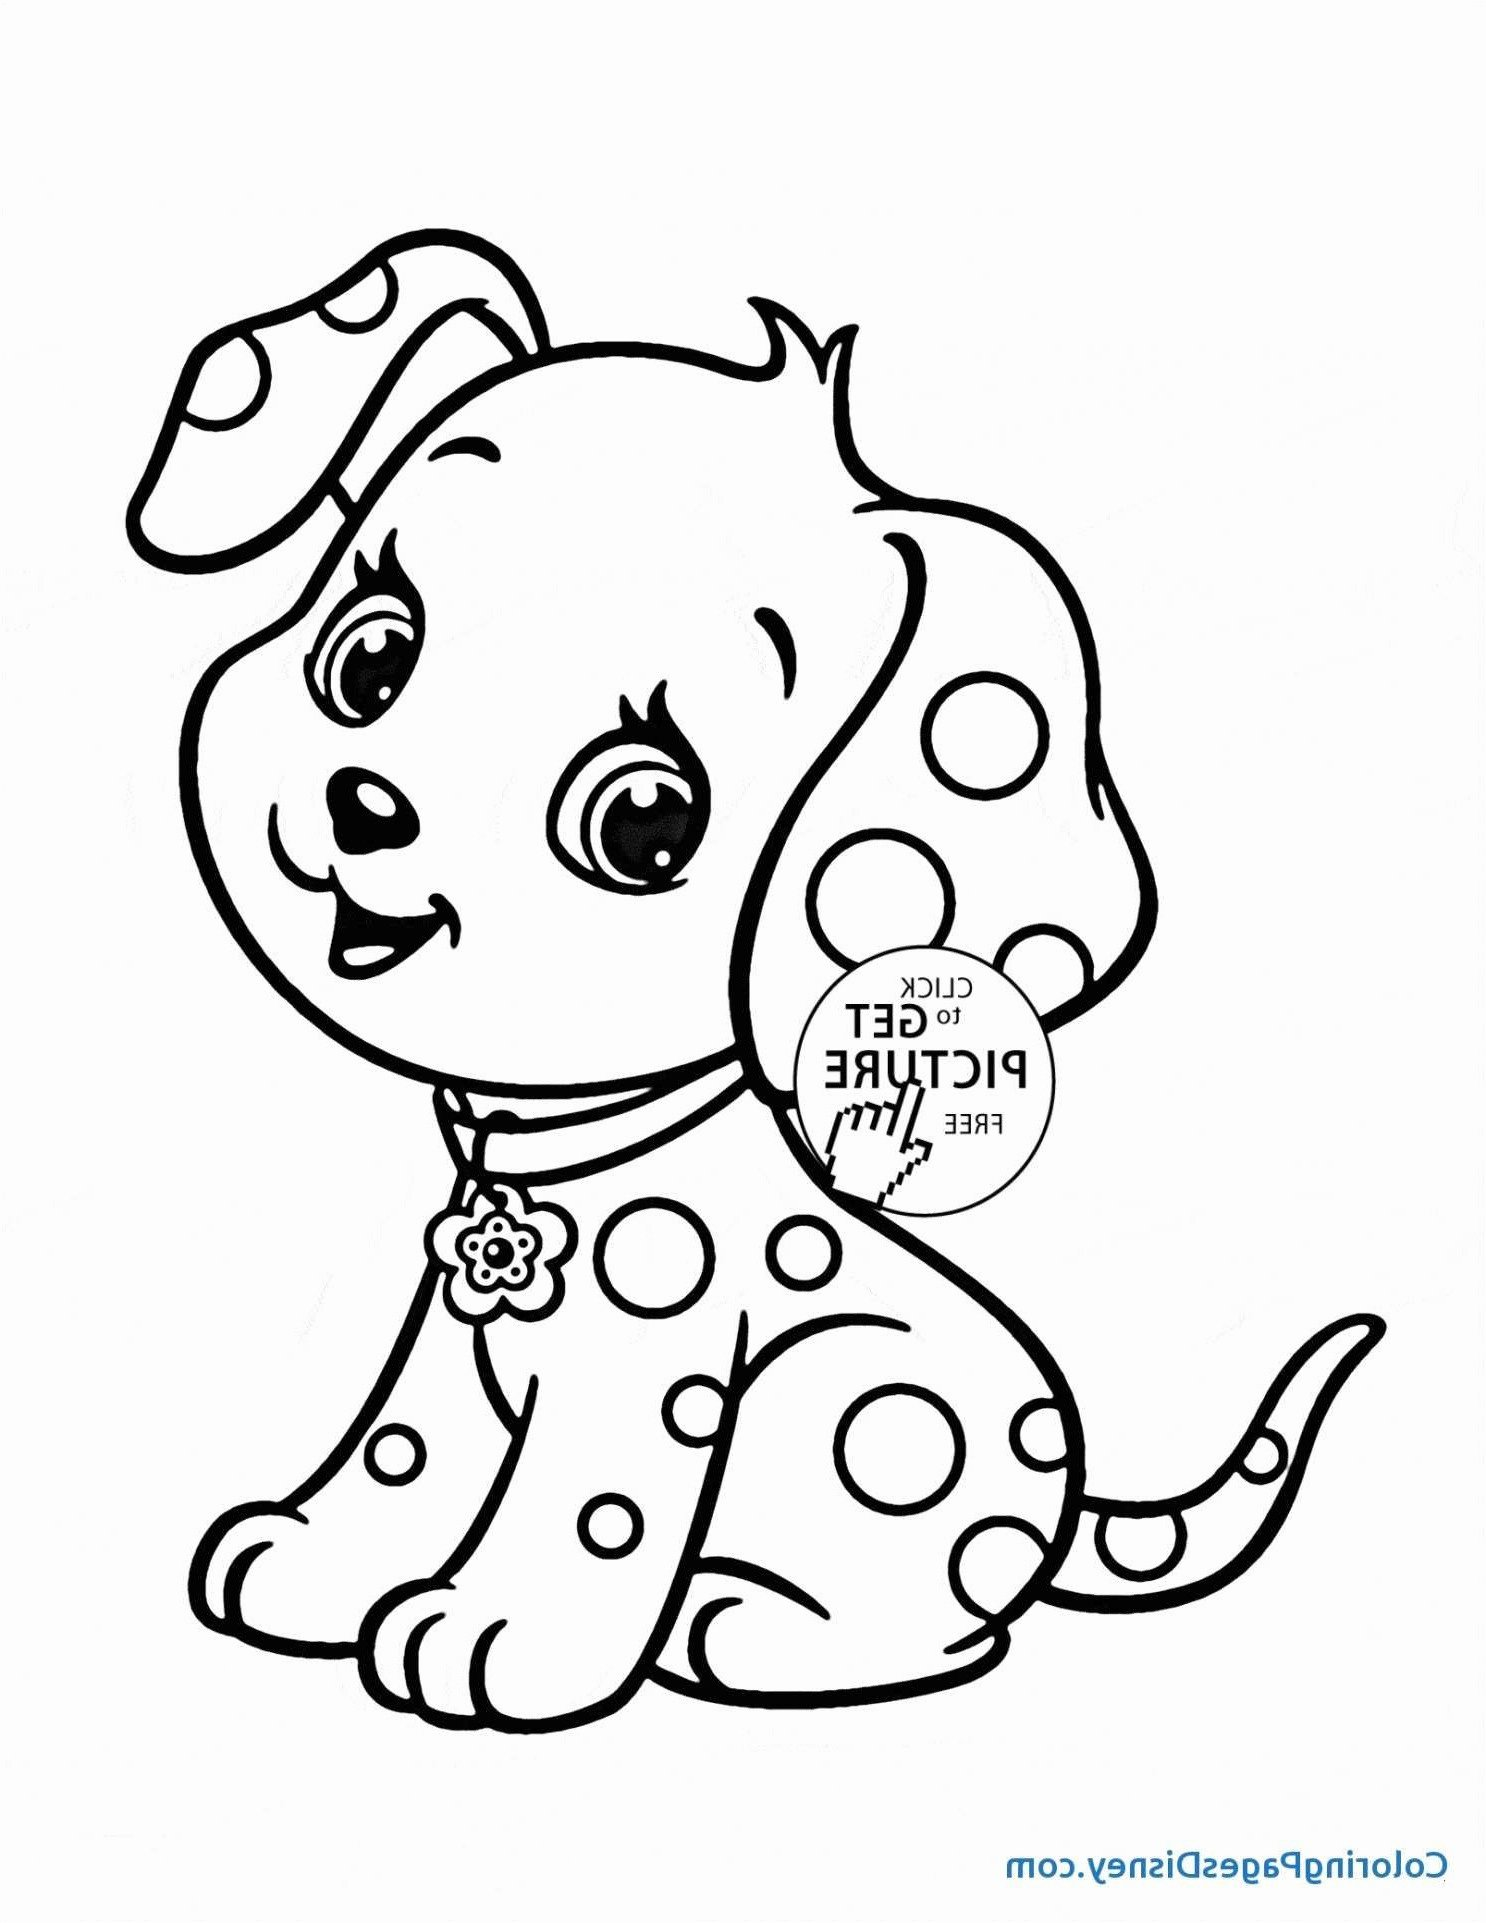 Free Printable Coloring Worksheets for Preschoolers New Coloring Pages Free Printable Coloring Sheets for toddlers